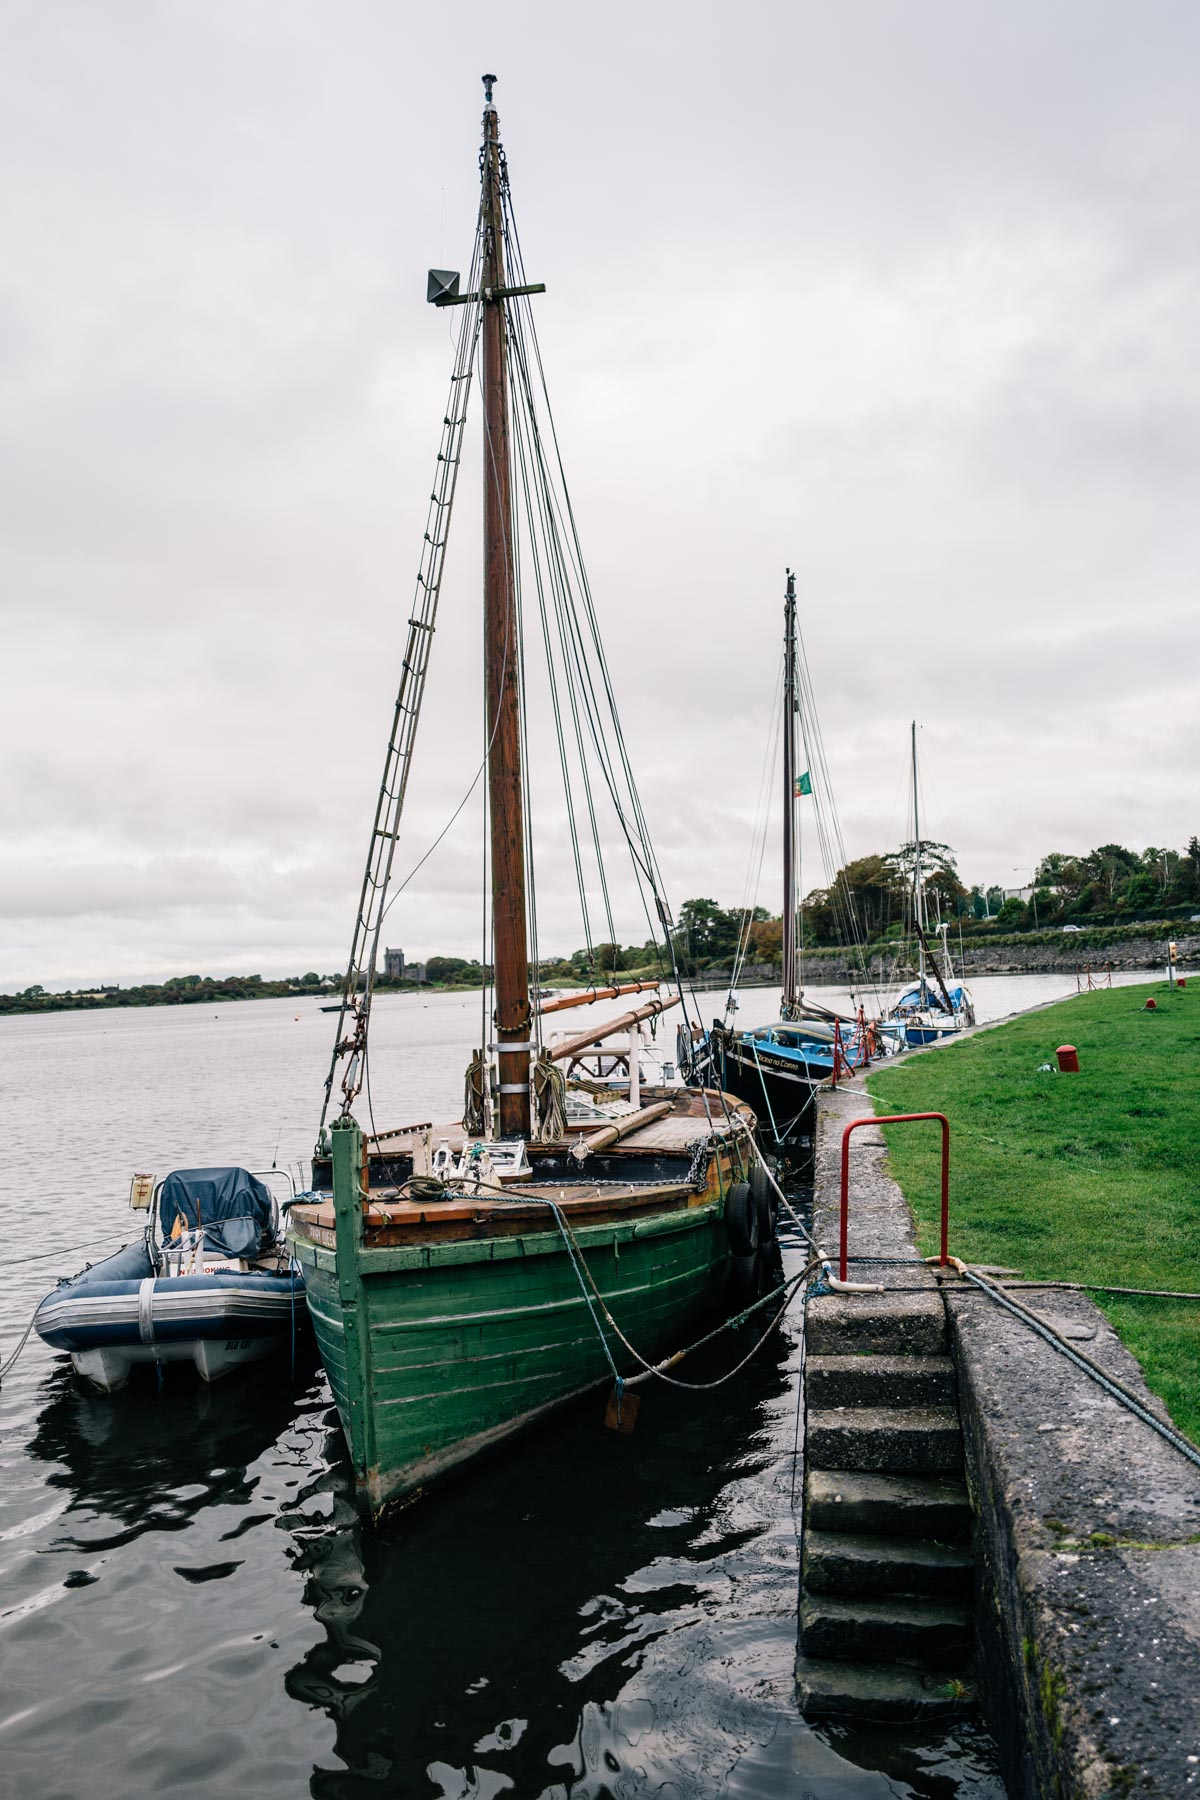 Wooden boats in the harbor at Kinvarra, Ireland